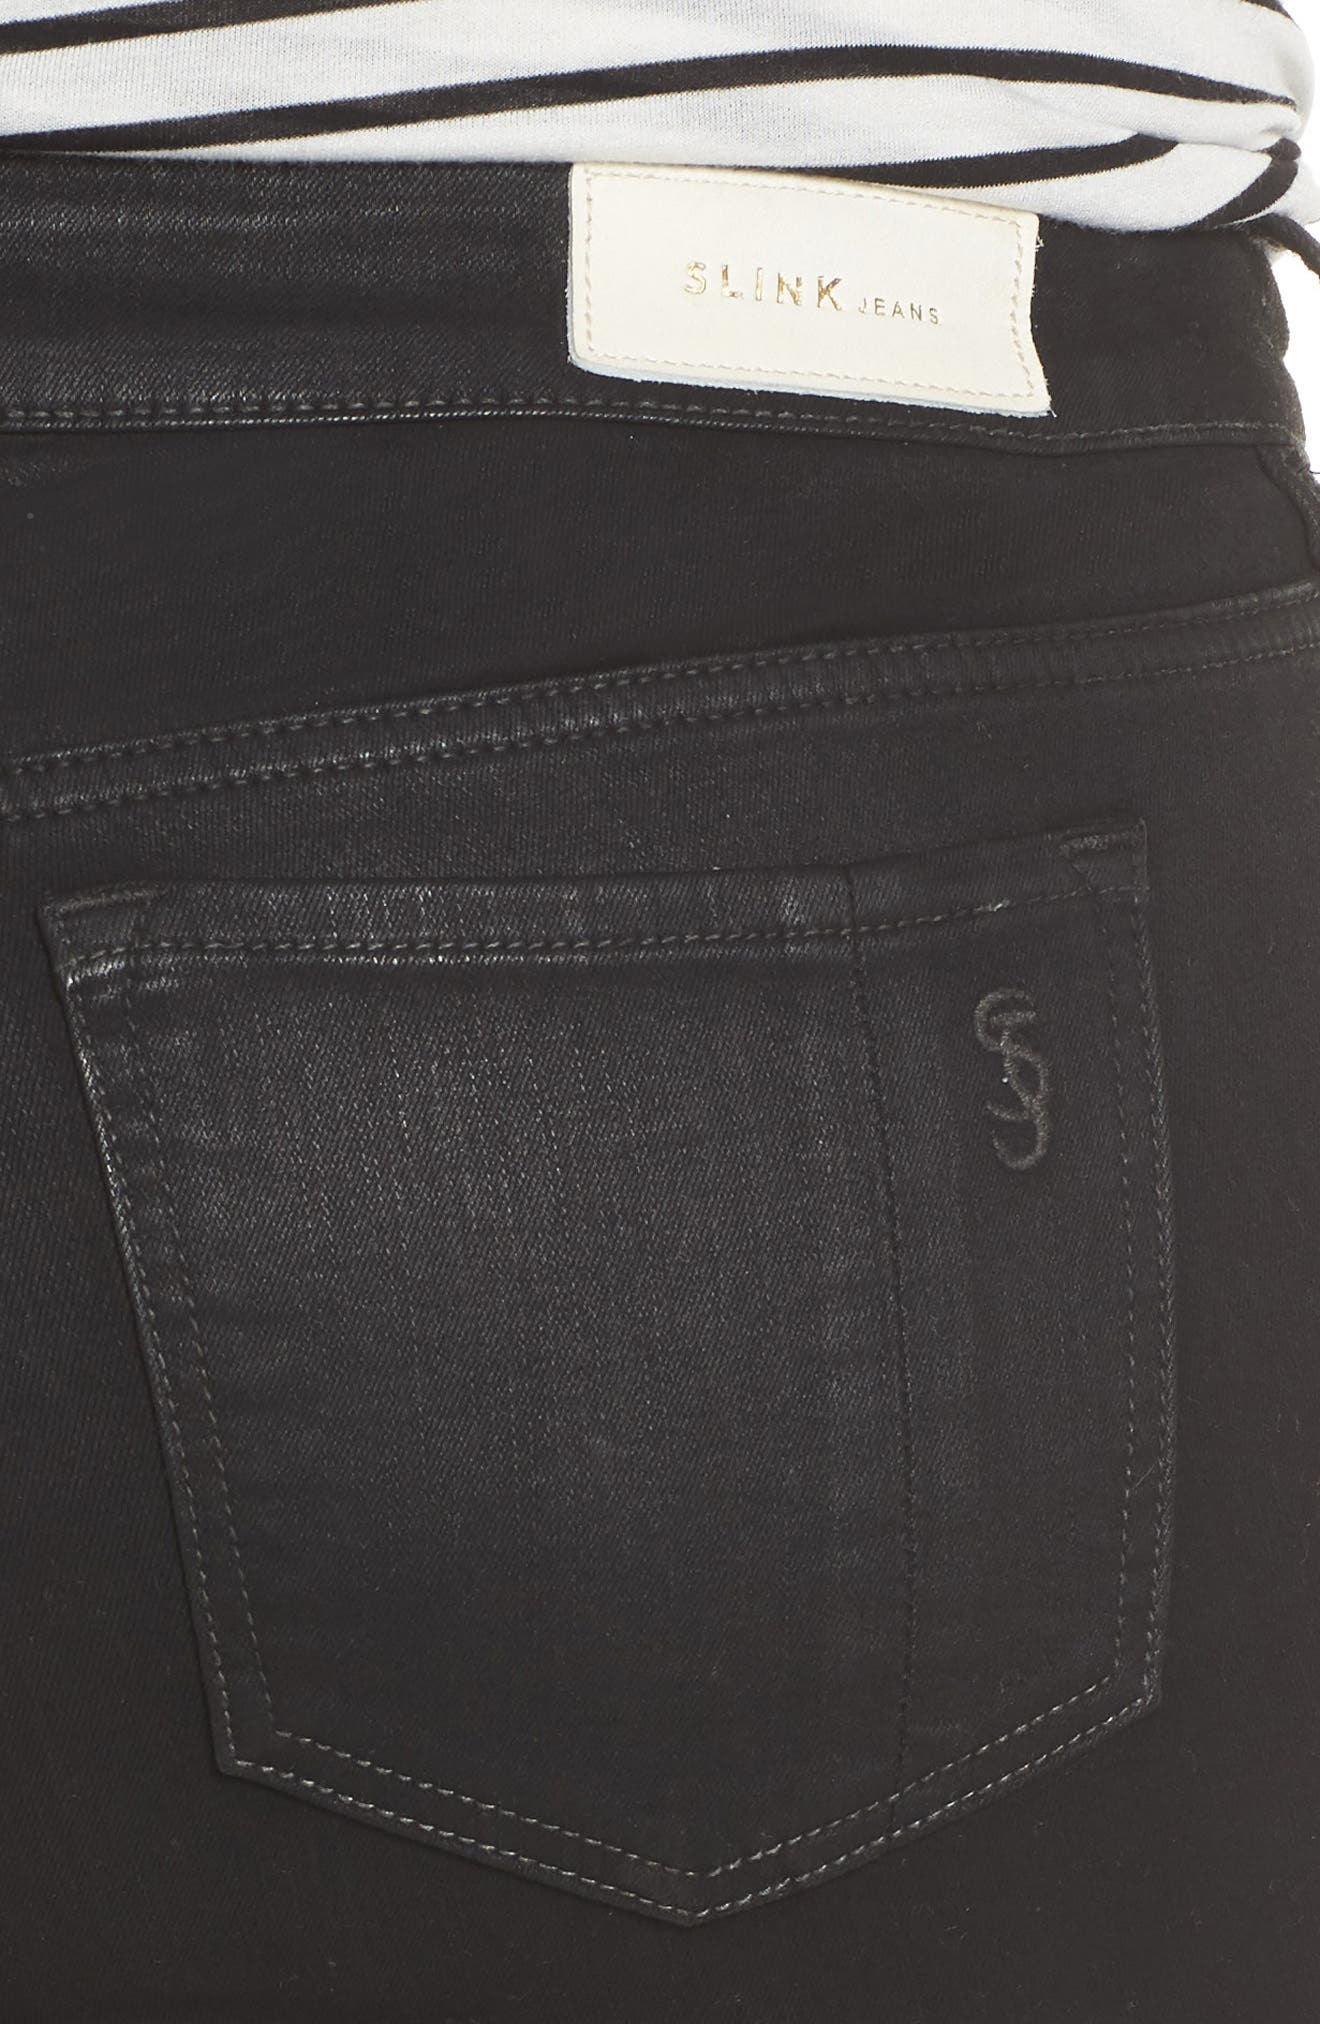 SLINK JEANS,                             Coated Straight Leg Ankle Jeans,                             Alternate thumbnail 5, color,                             007